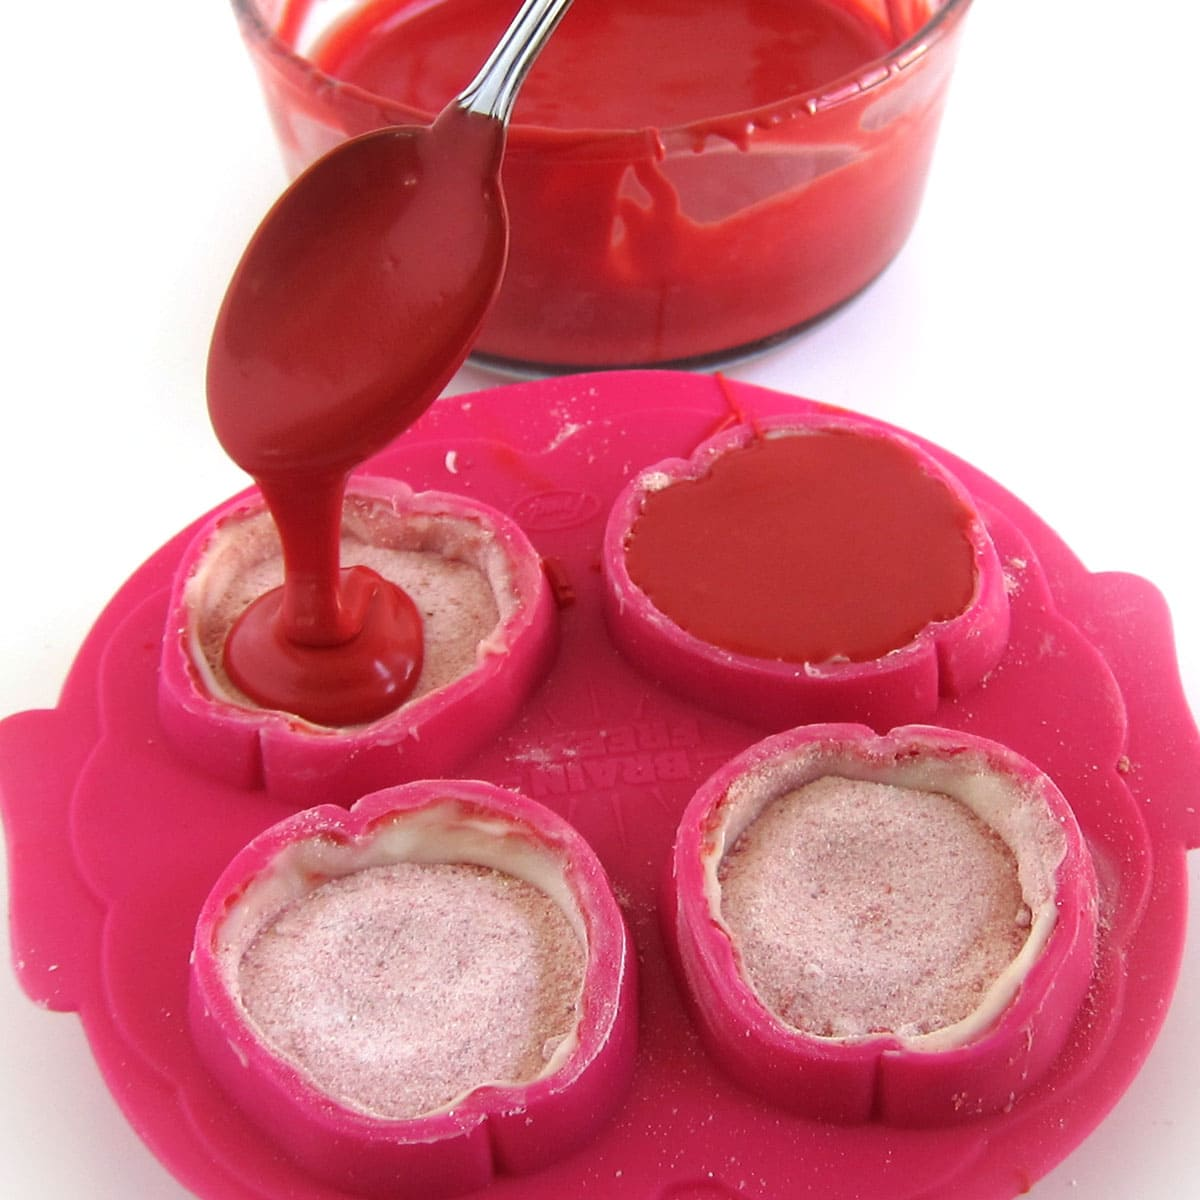 Spoon red candy melts over top of the strawberry hot cocoa mix in the brain mold.